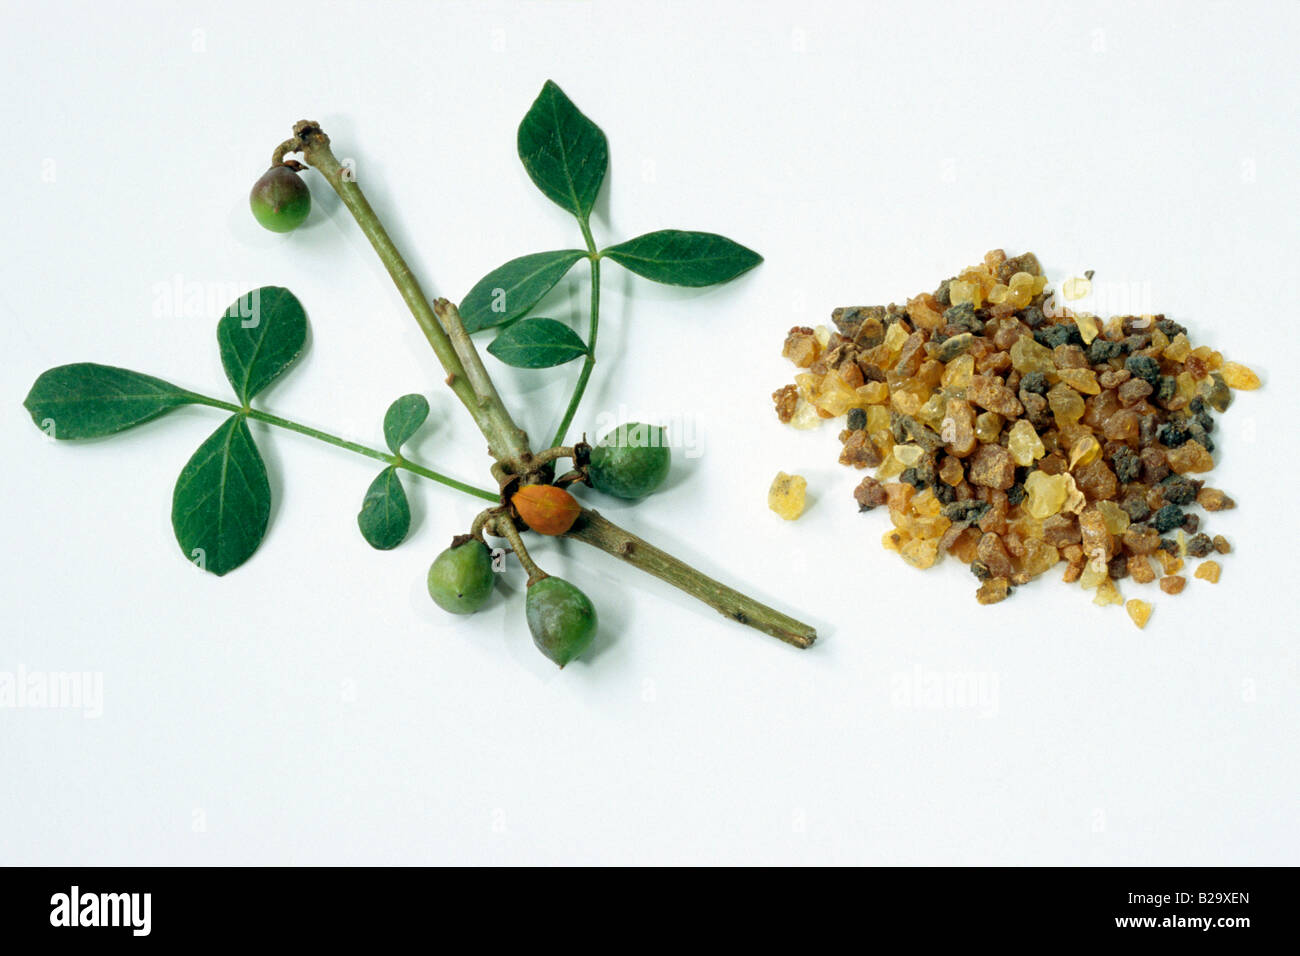 Abyssinian Myrrh (Commiphora abyssinica), twig with leaves, twig with leaves and resin, studio picture - Stock Image